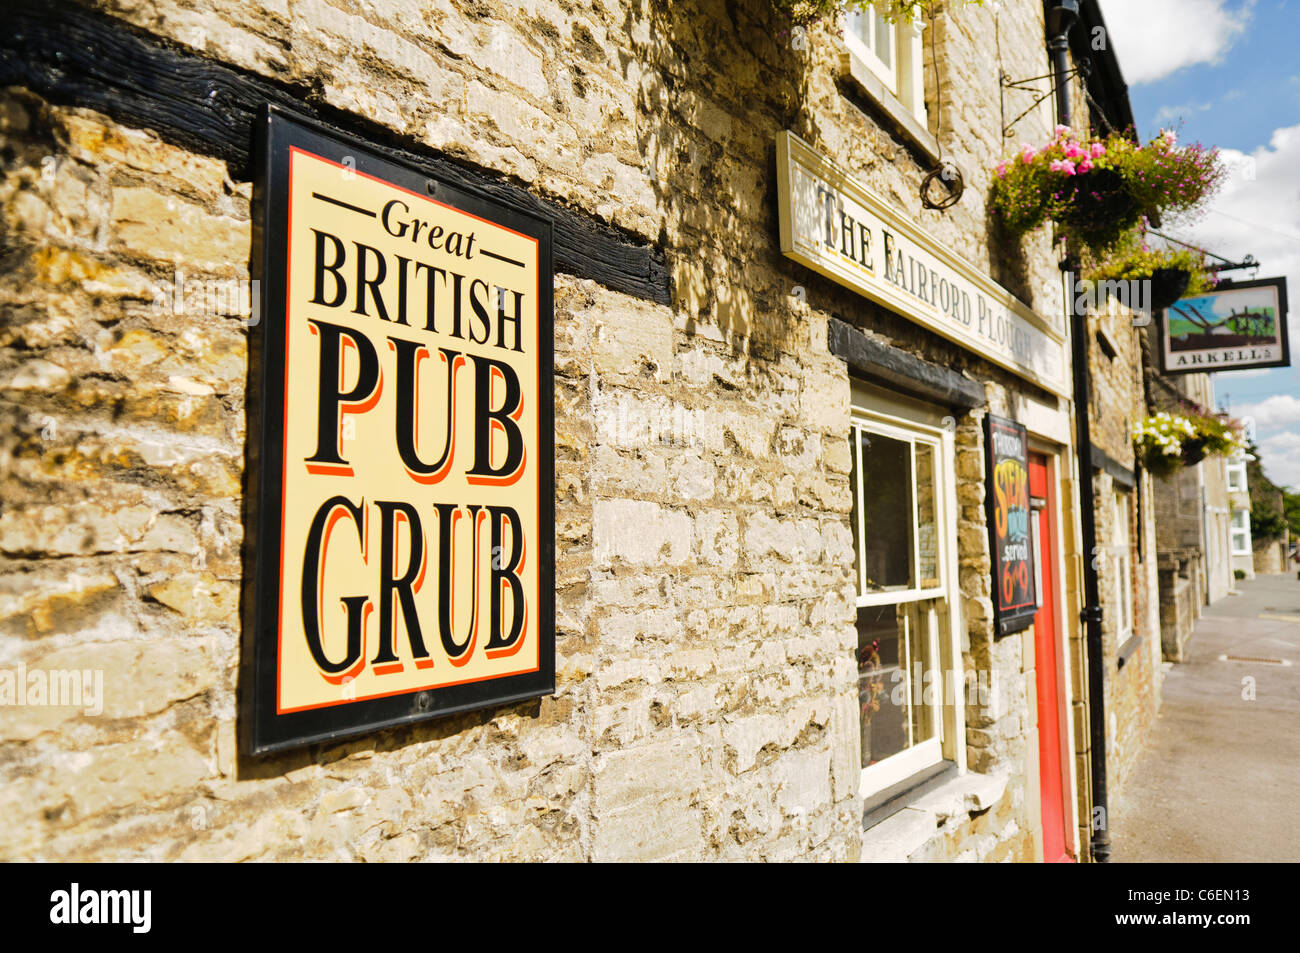 Sign outside a pub in Fairford advertising Great British Pub Grub - Stock Image